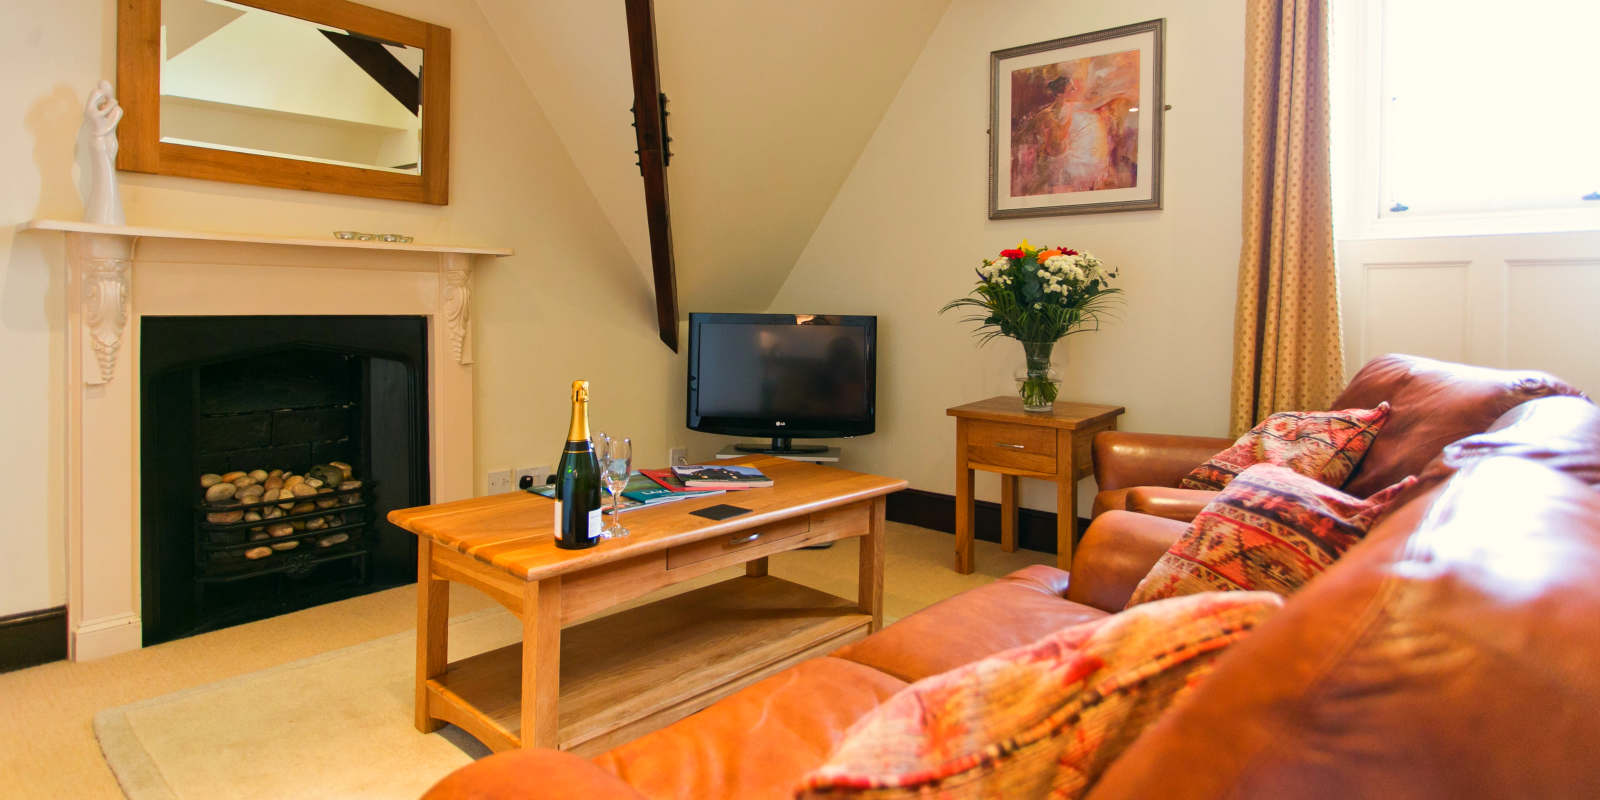 Lake District holiday cottages luxury